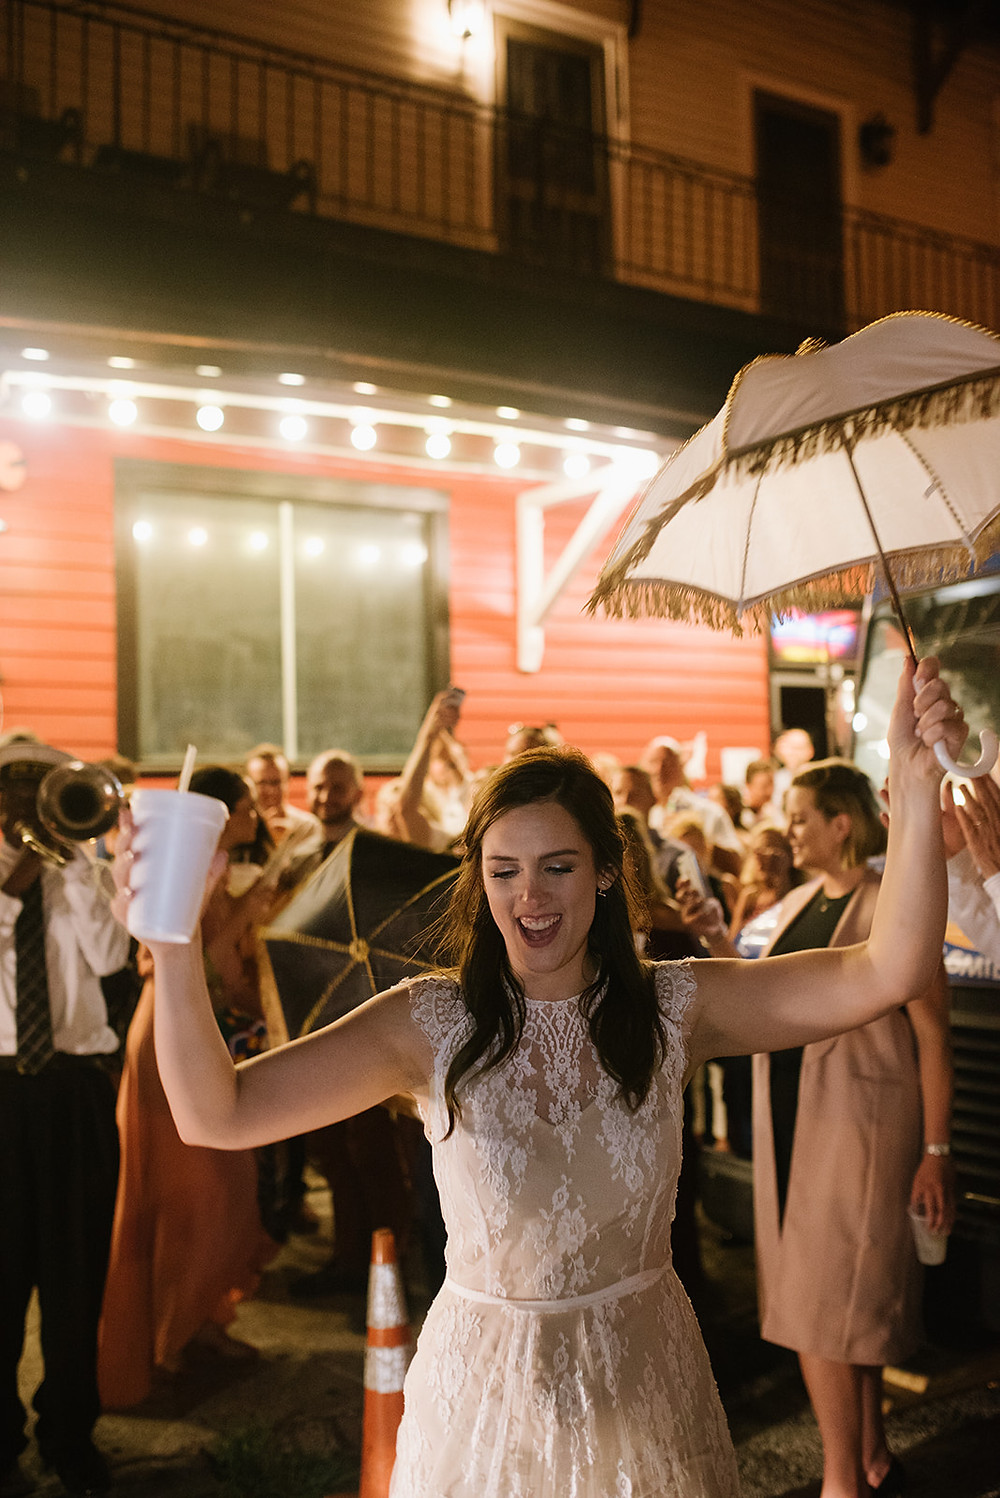 Lindsey & Alex | New Orleans Wedding with Lauren Carroll Photography at Rusty Nail and Lovegood Wedding & Event Rentals / Vintage Rentals, Garden Bisrto Chairs, Ceremony, Reception at Famous New Orleans Bar, Lounge Space, Highboys, Secondline Band